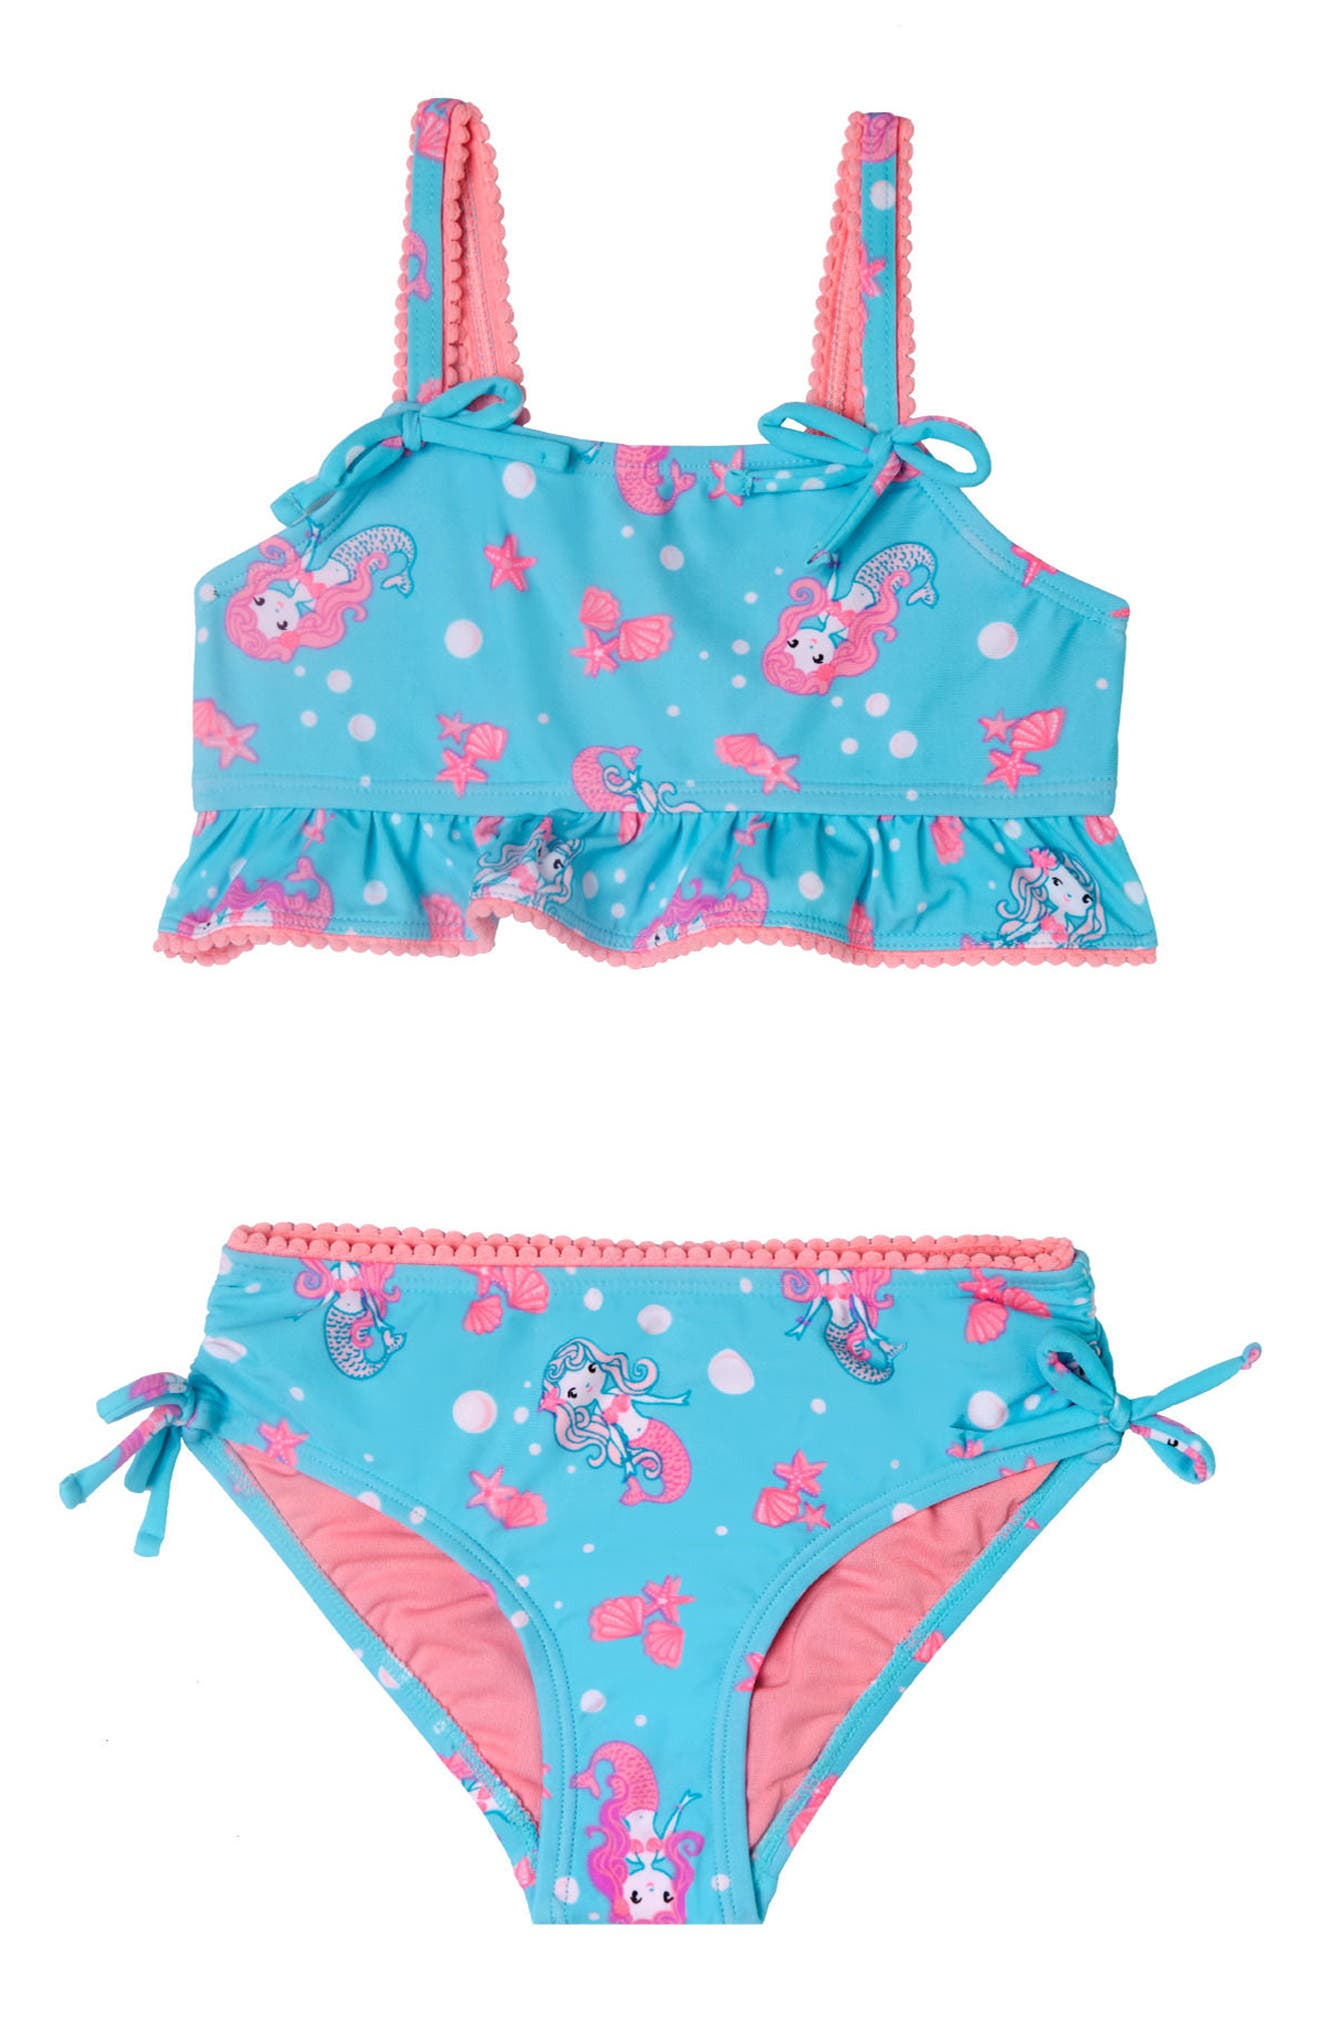 Mermaid Crush Two-Piece Swimsuit,                             Main thumbnail 1, color,                             405